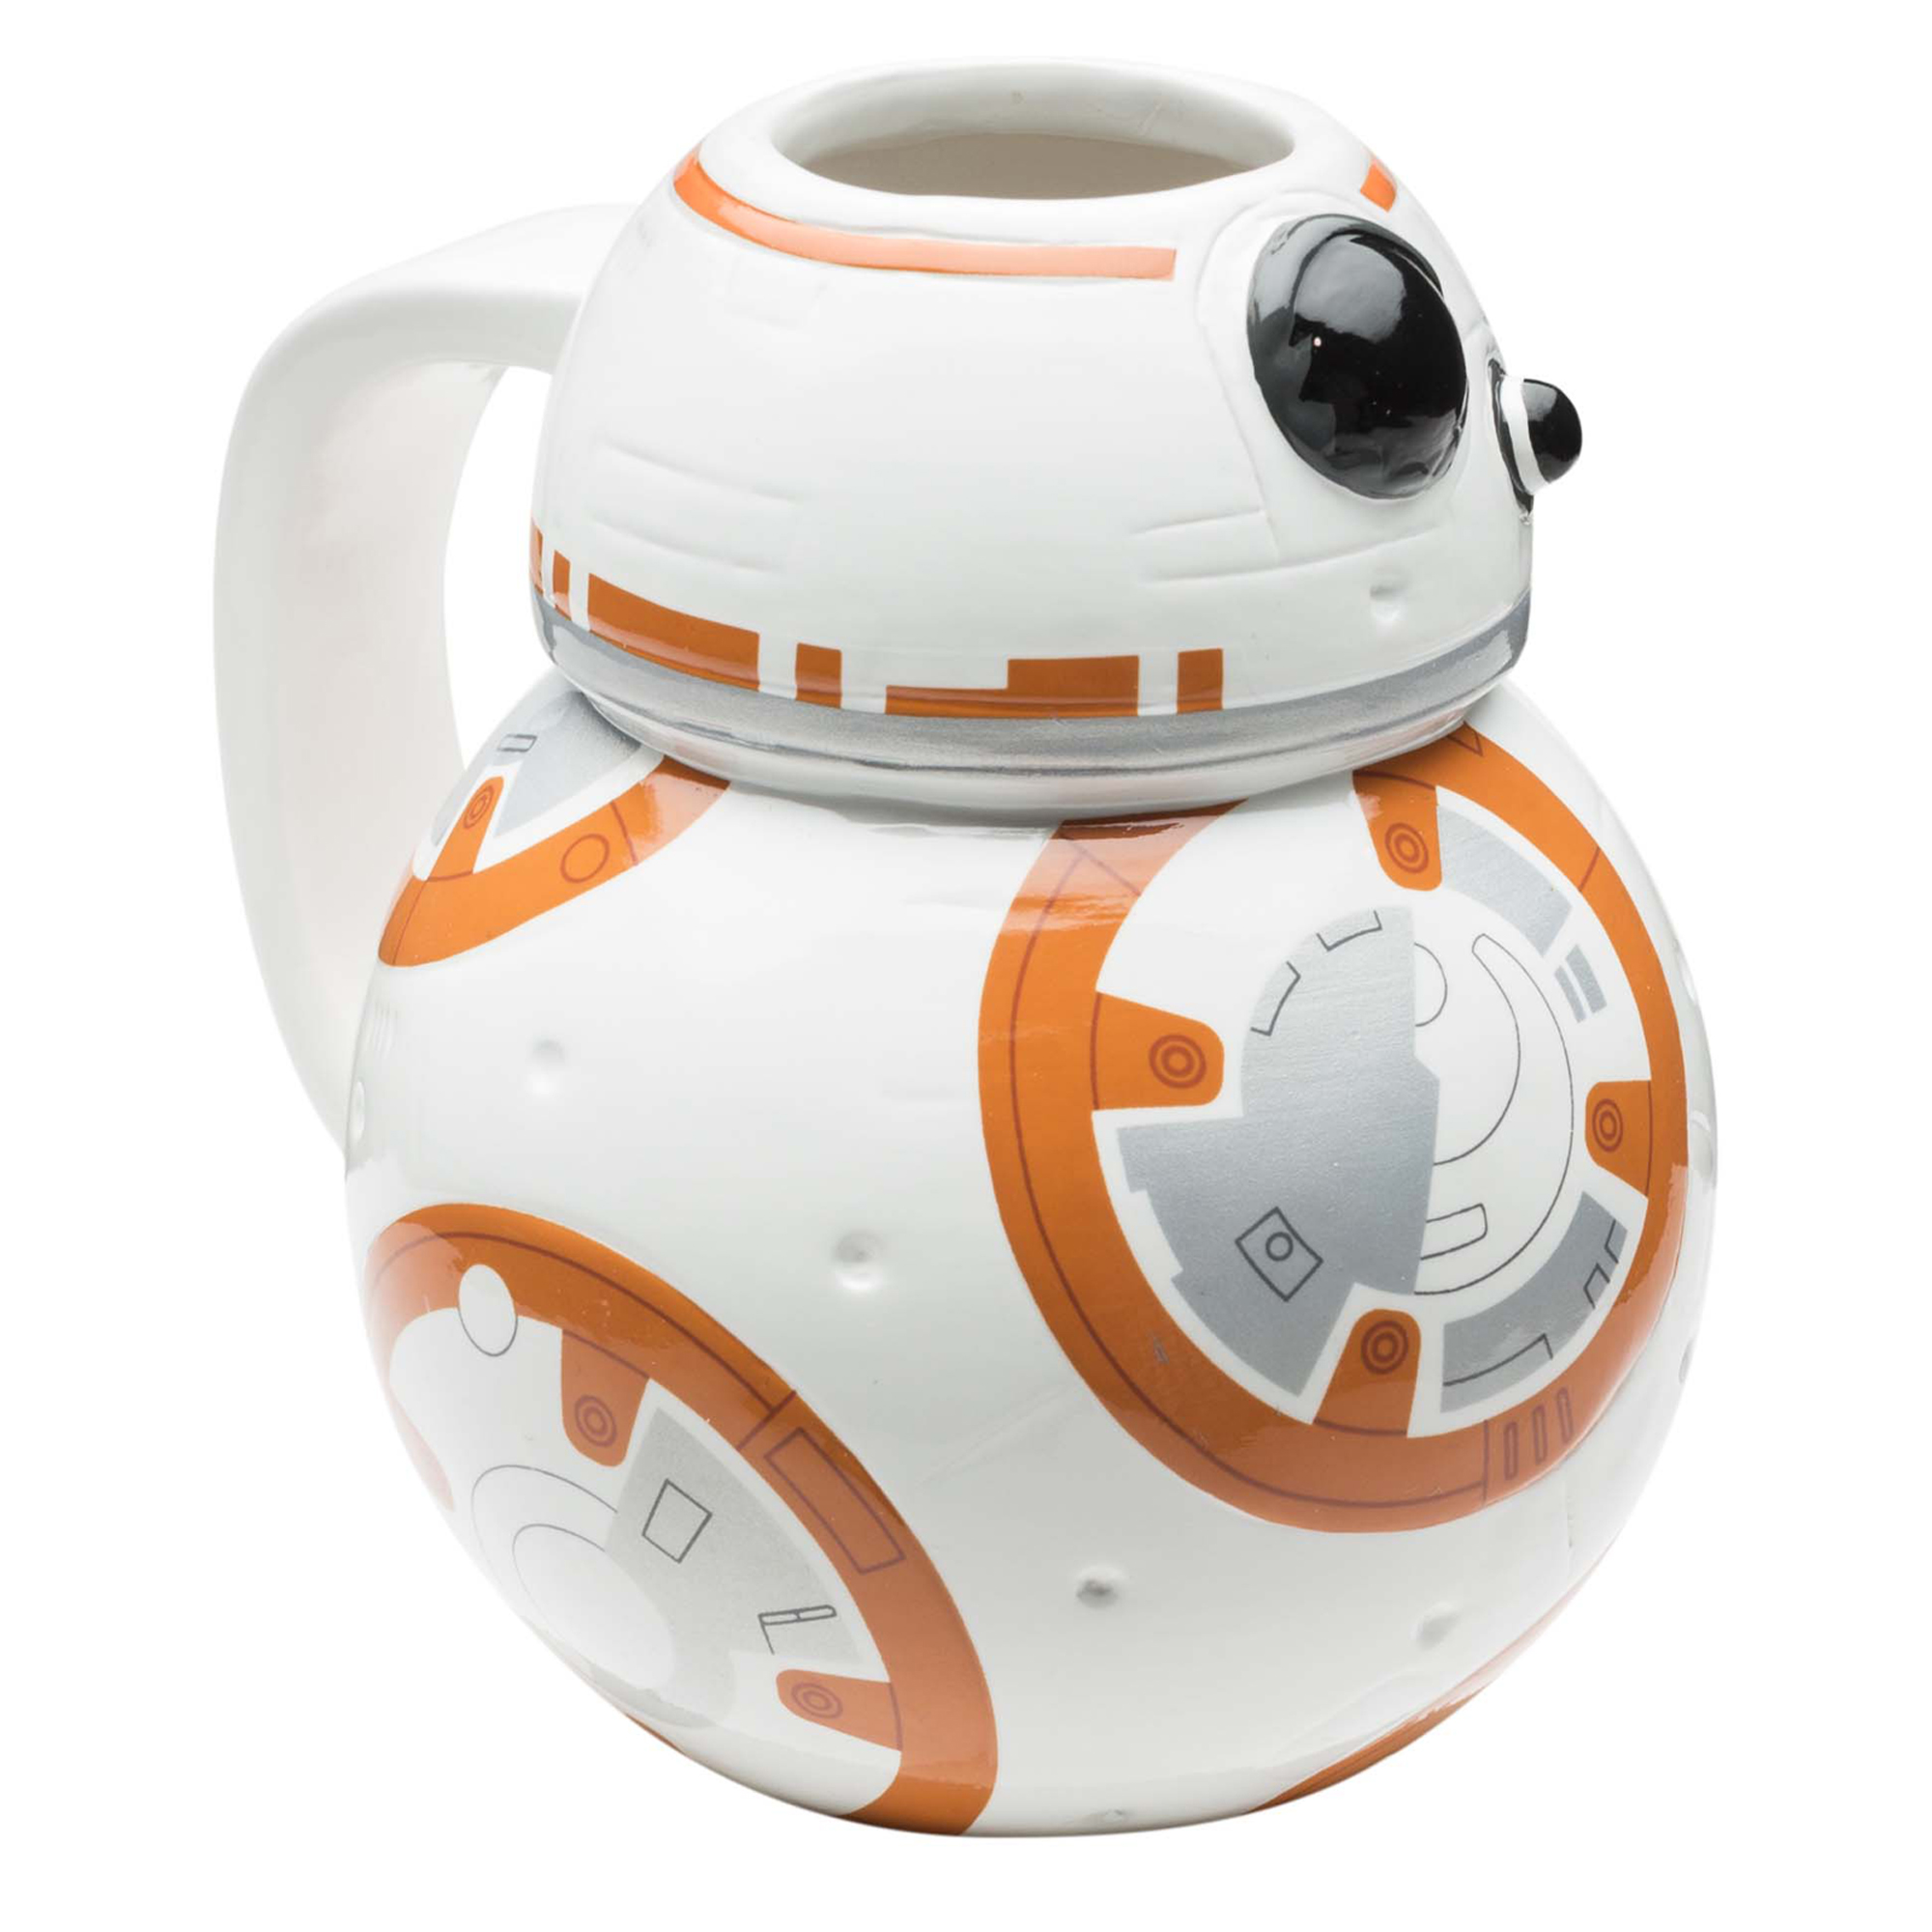 Star Wars Ceramic Coffee Mug, BB-8 slideshow image 1